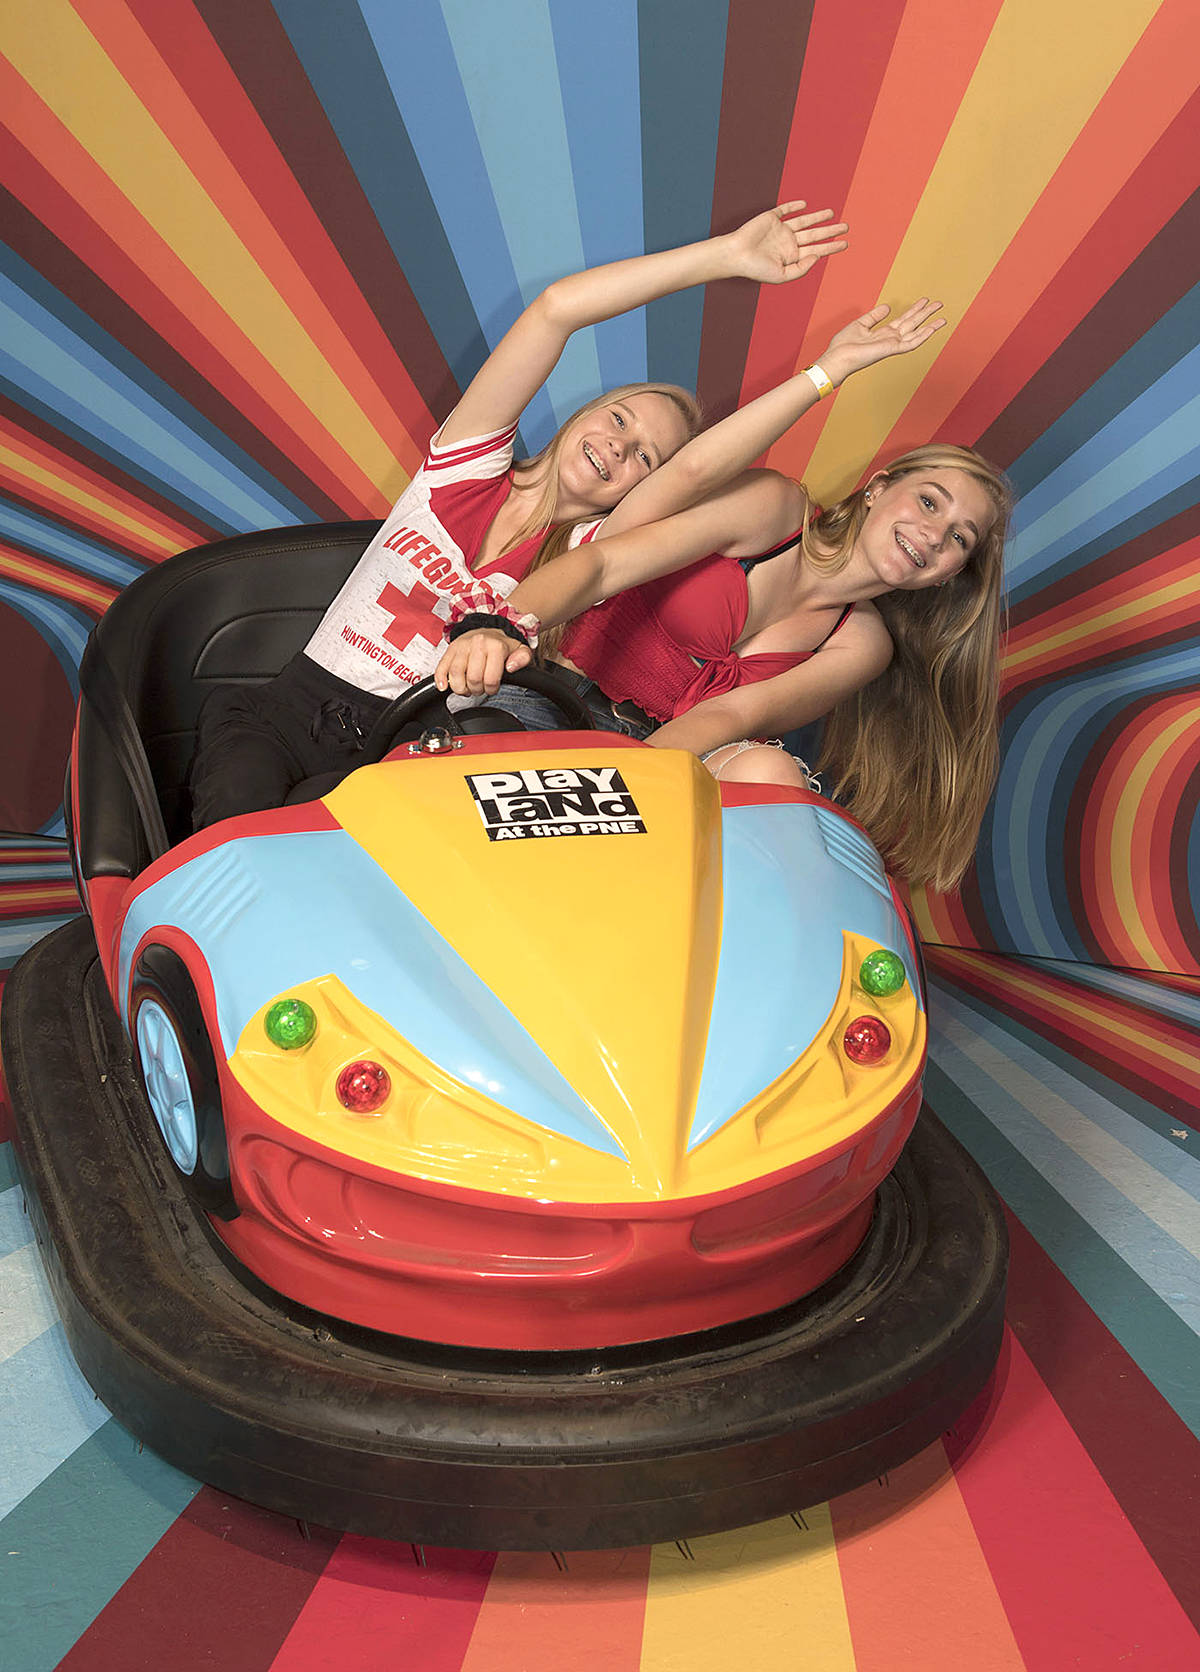 Kennedy Kolisnyk and Isabelle Dyck of Langley brace for impact in a bumper car during their visit to the PNE Fair's Snap Happy exhibit. The massive pop-up pavilion is what social media dreams are made of, open from 11 a.m. to 11 p.m. daily. (PNE/Special to the Langley Advance Times)